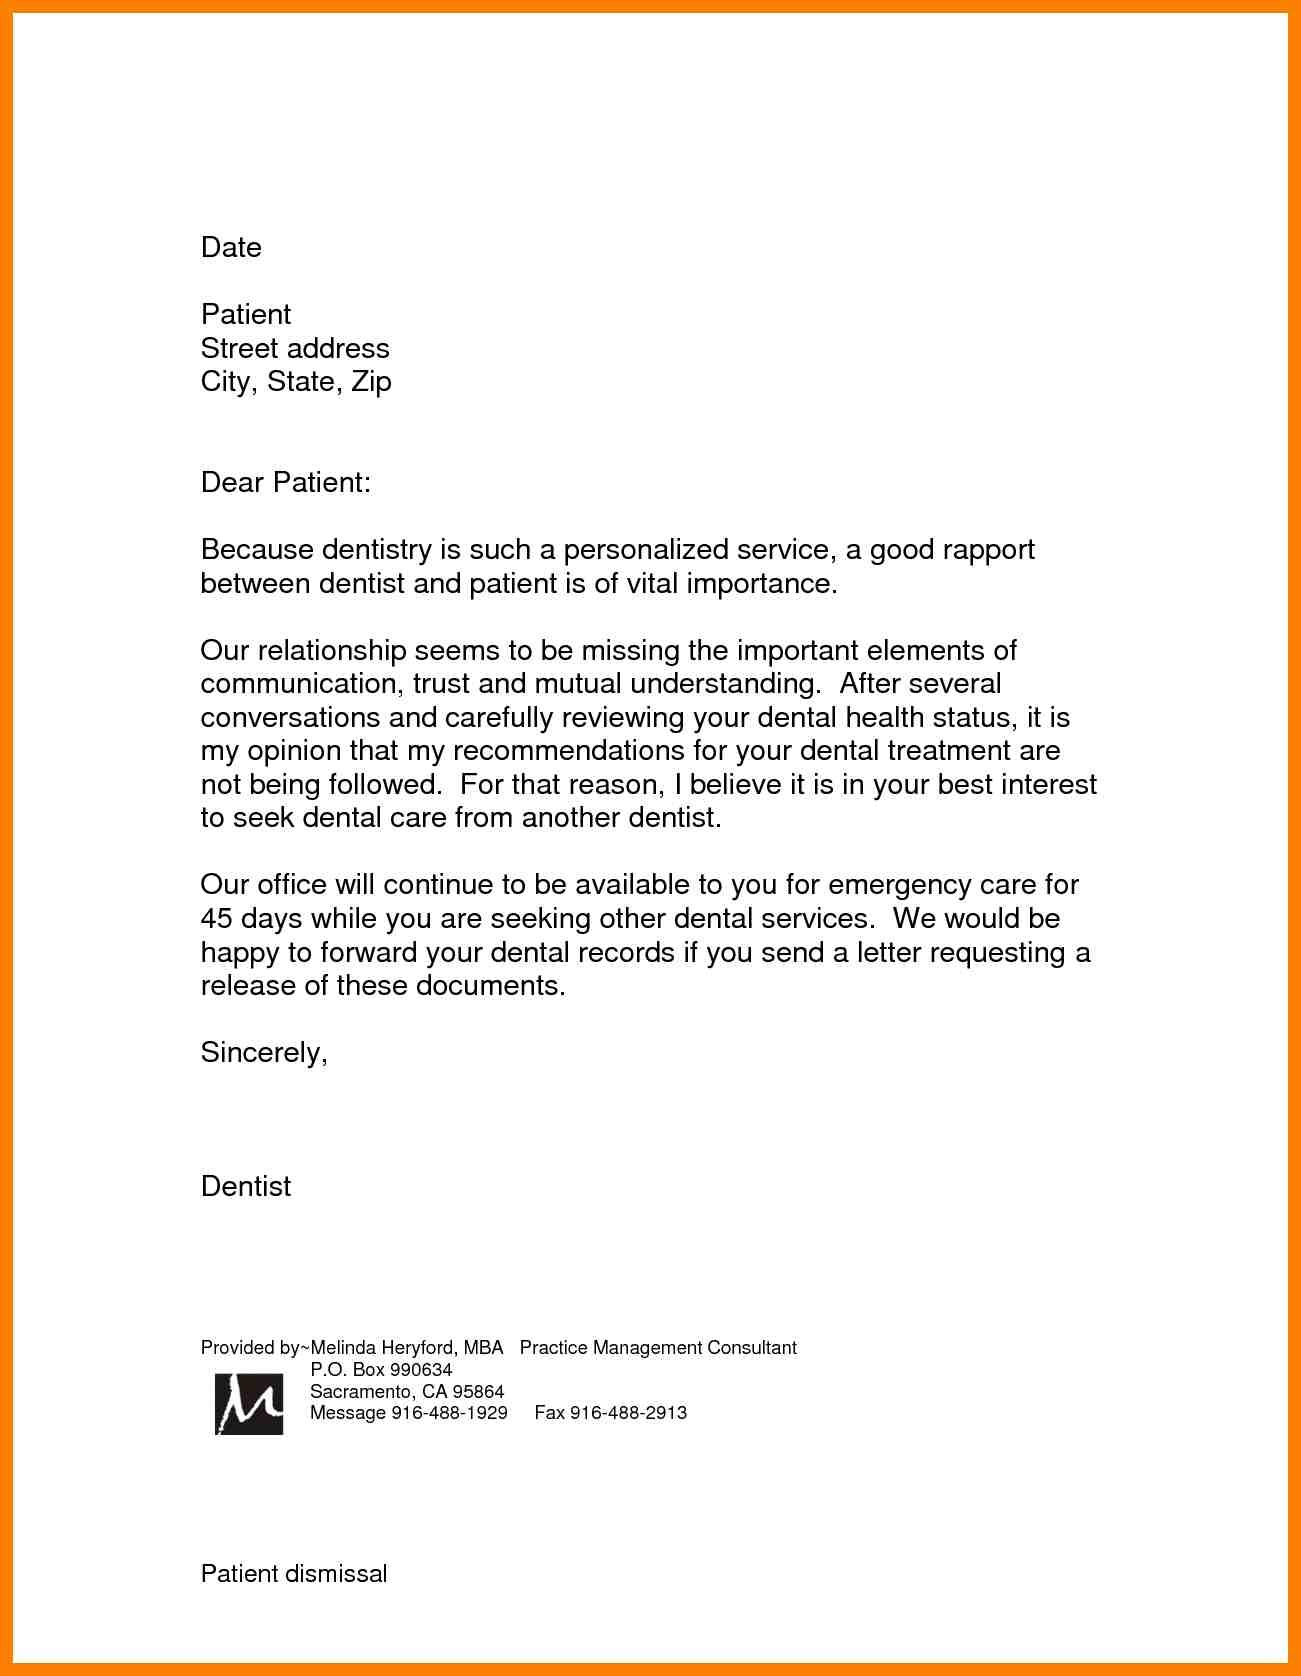 dental patient dismissal letter template samples letter letters templates disputes of dental services help